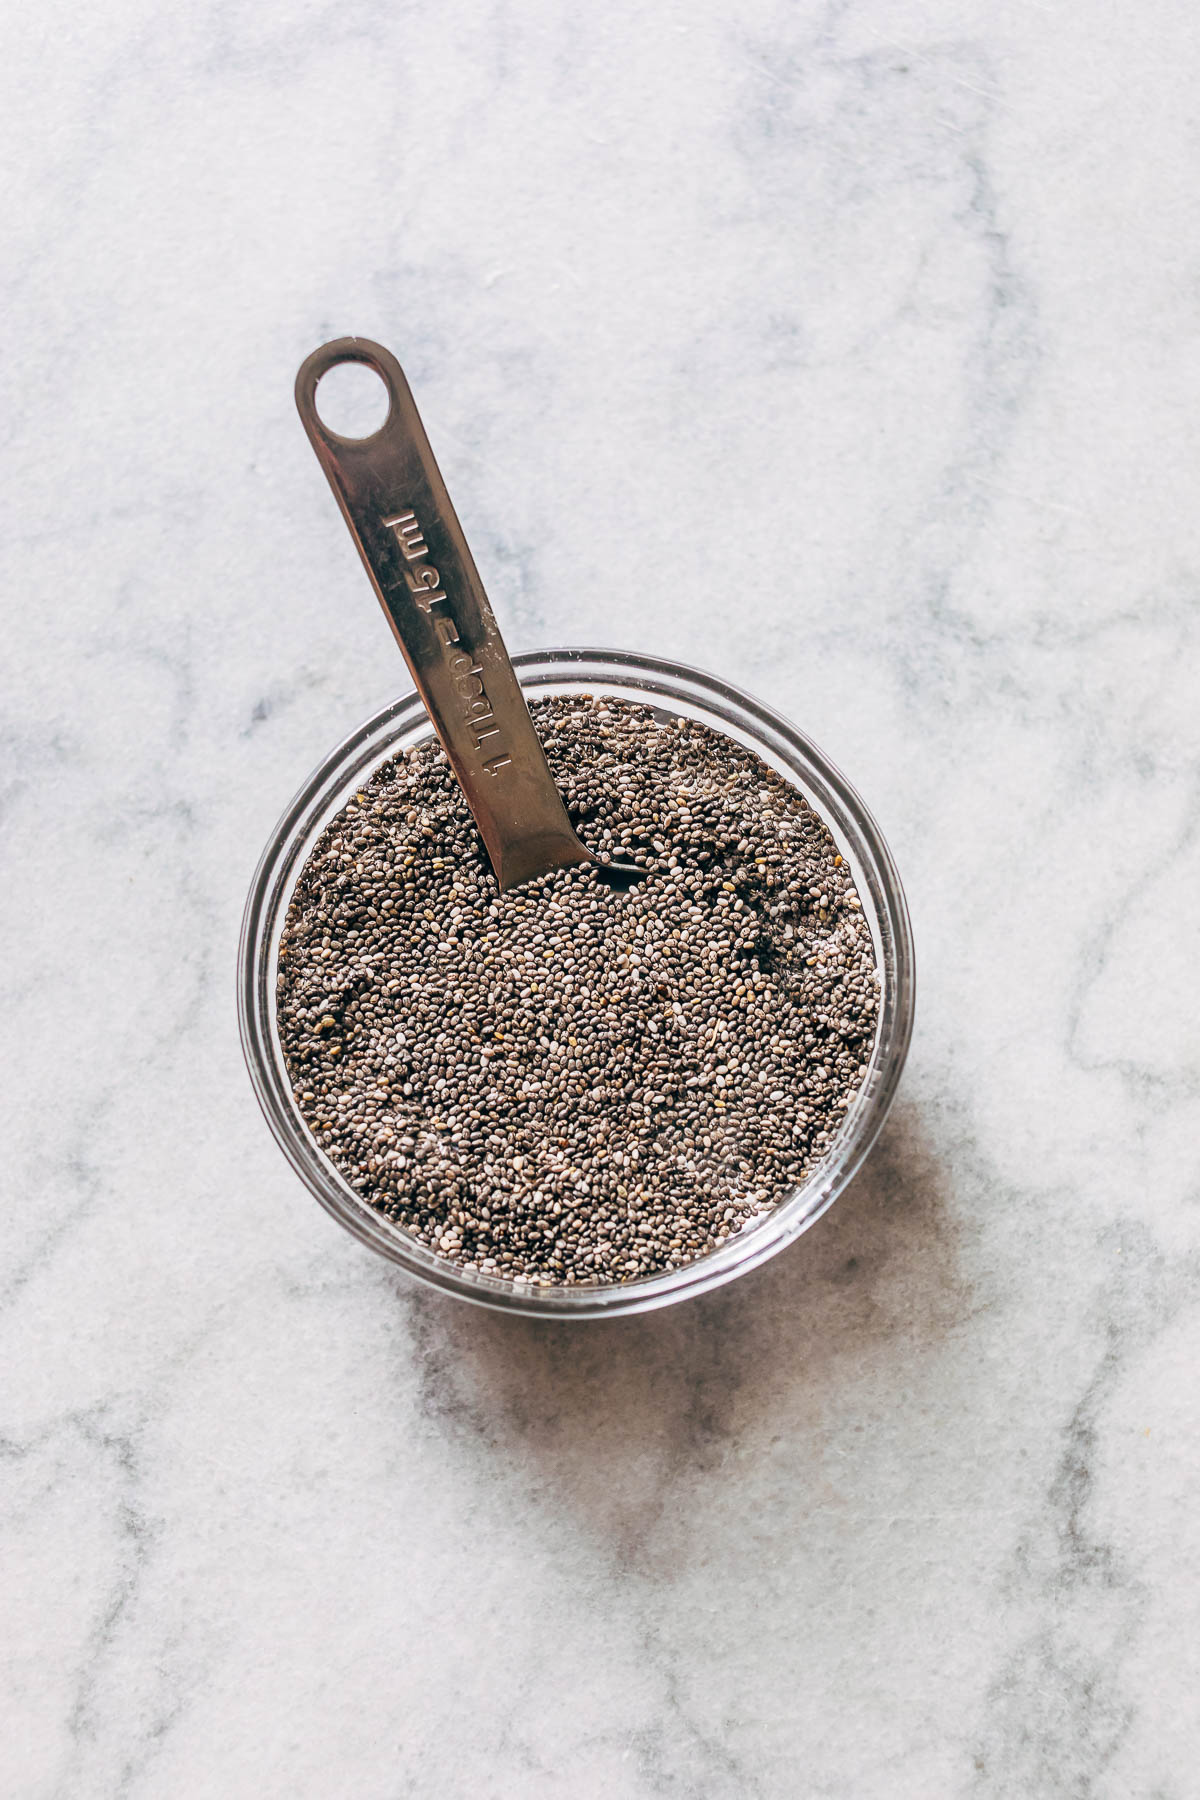 Soaked chia seeds.